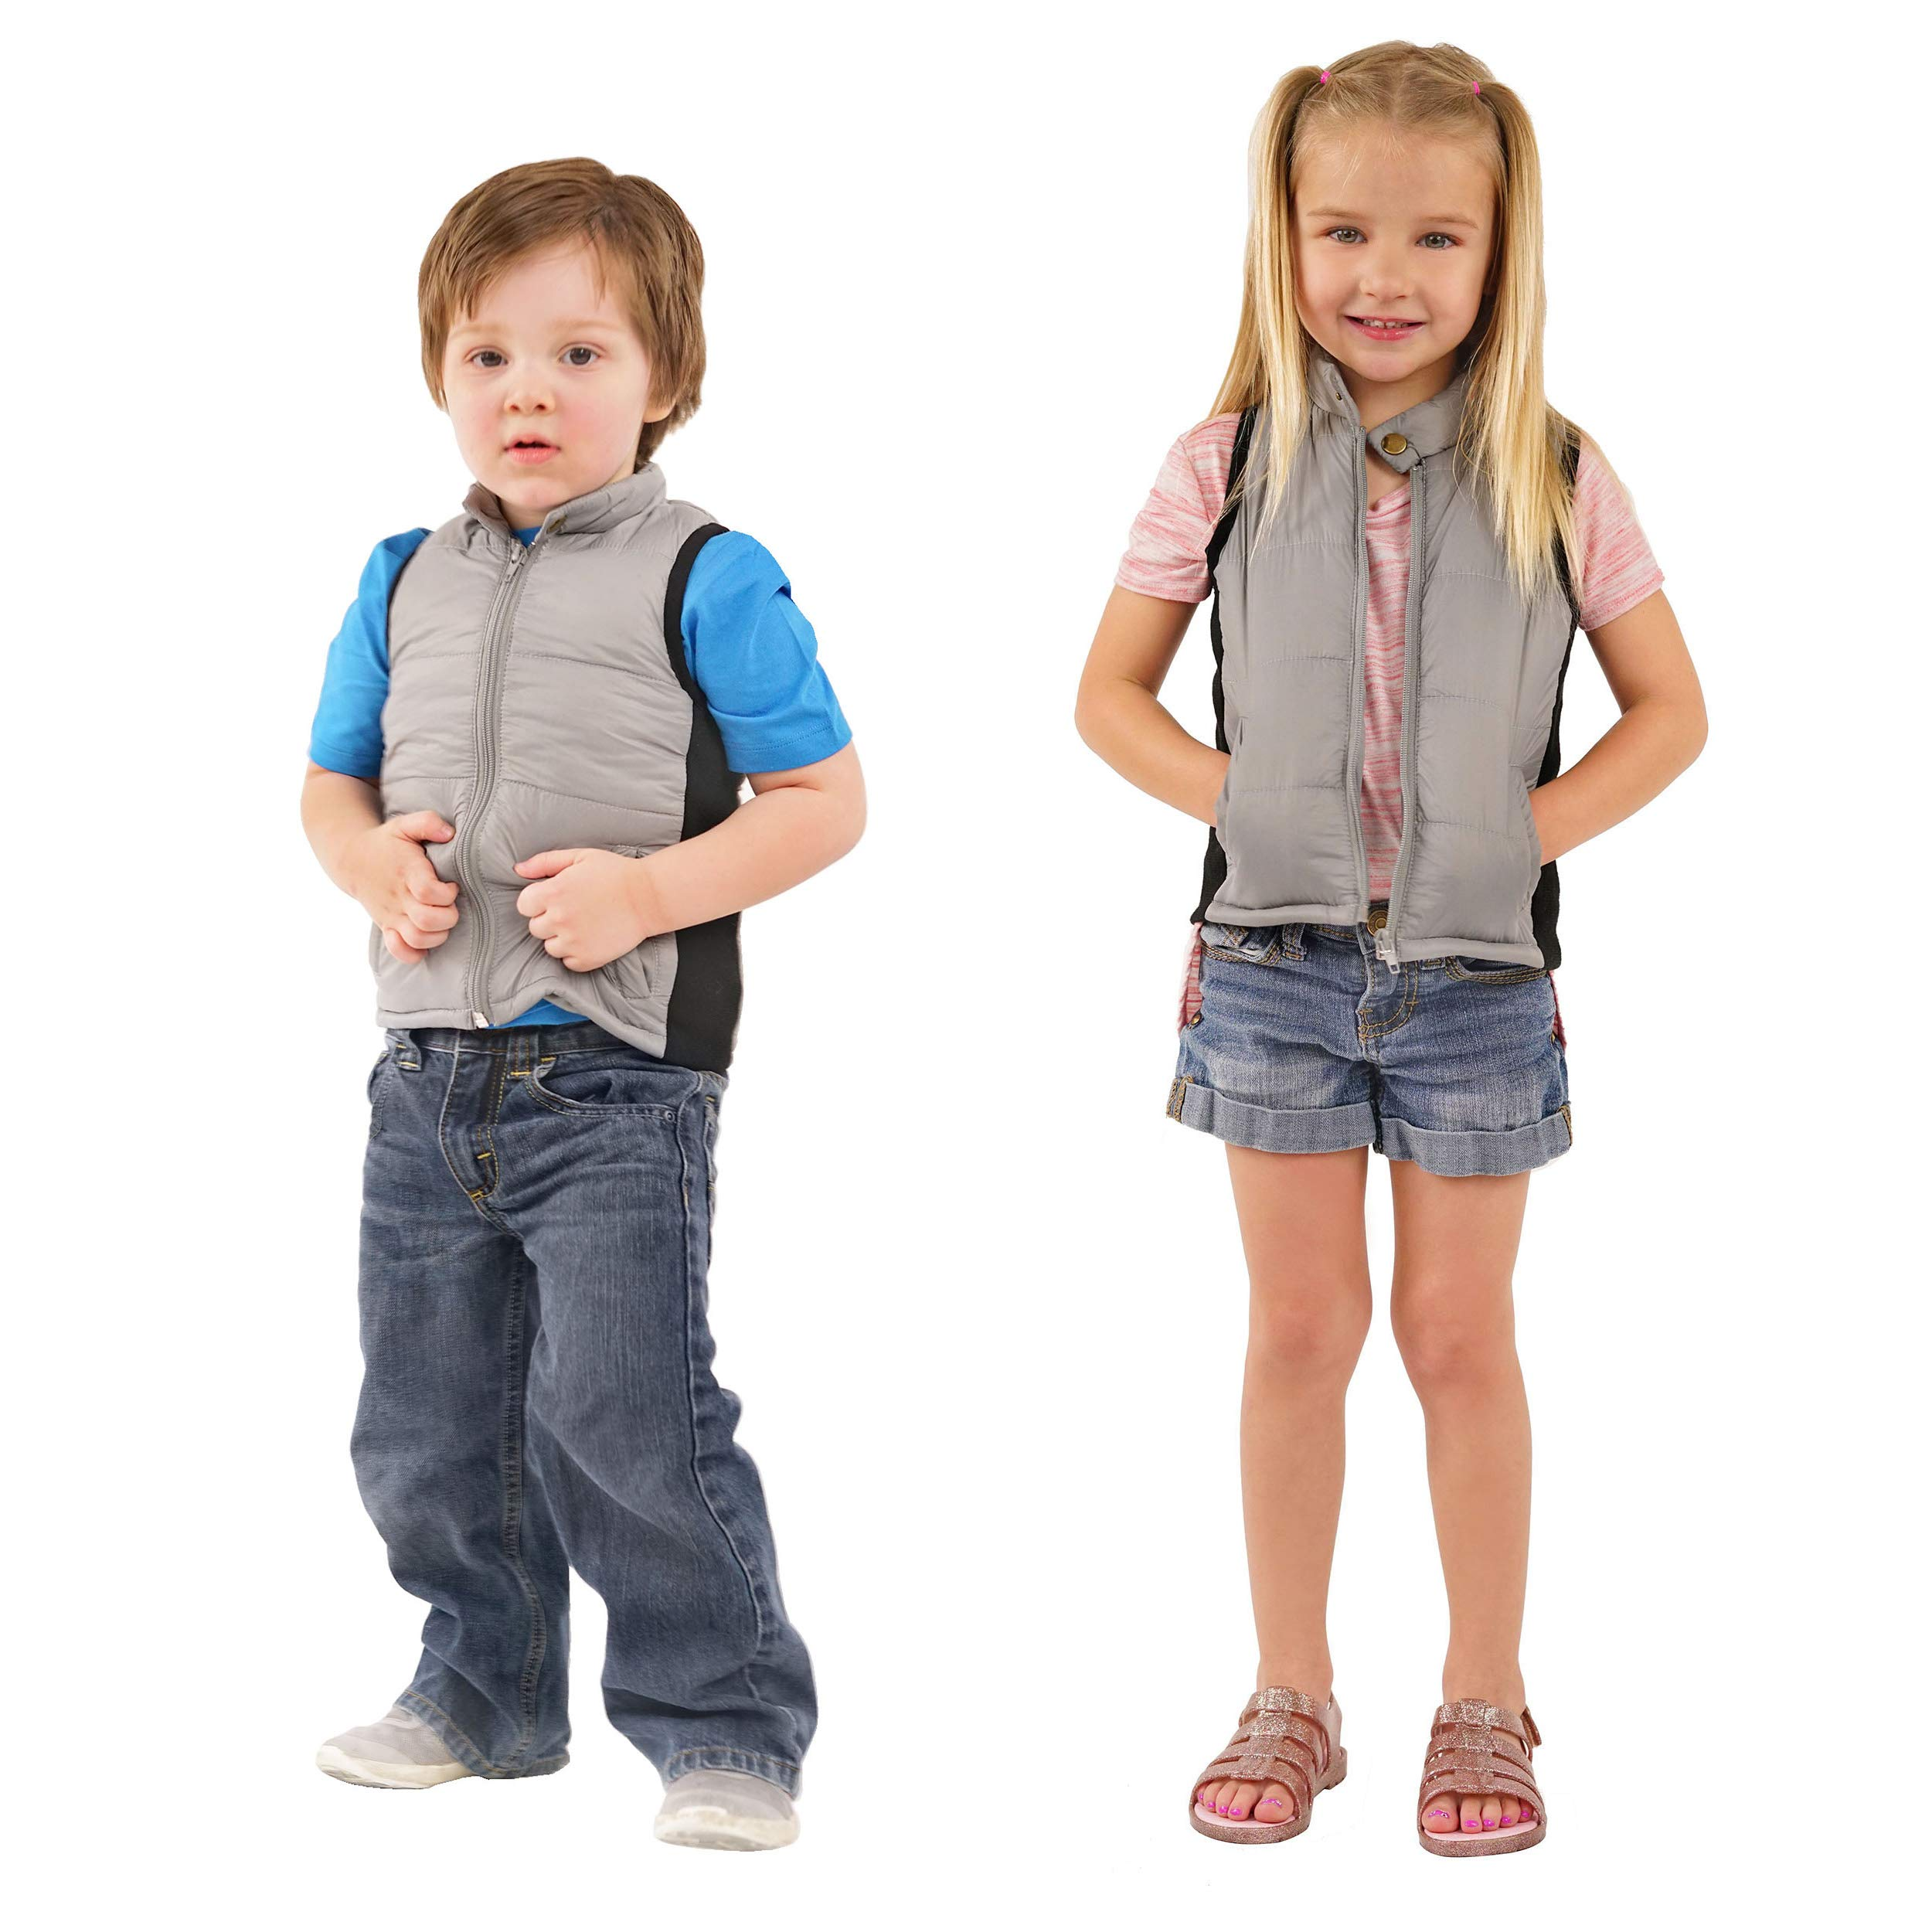 ZooVaa Weighted Vest for Kids - Children's Youth Nylon Sleek Vest w/Removable Weights - Medium -16-CCT-202MG by ZooVaa